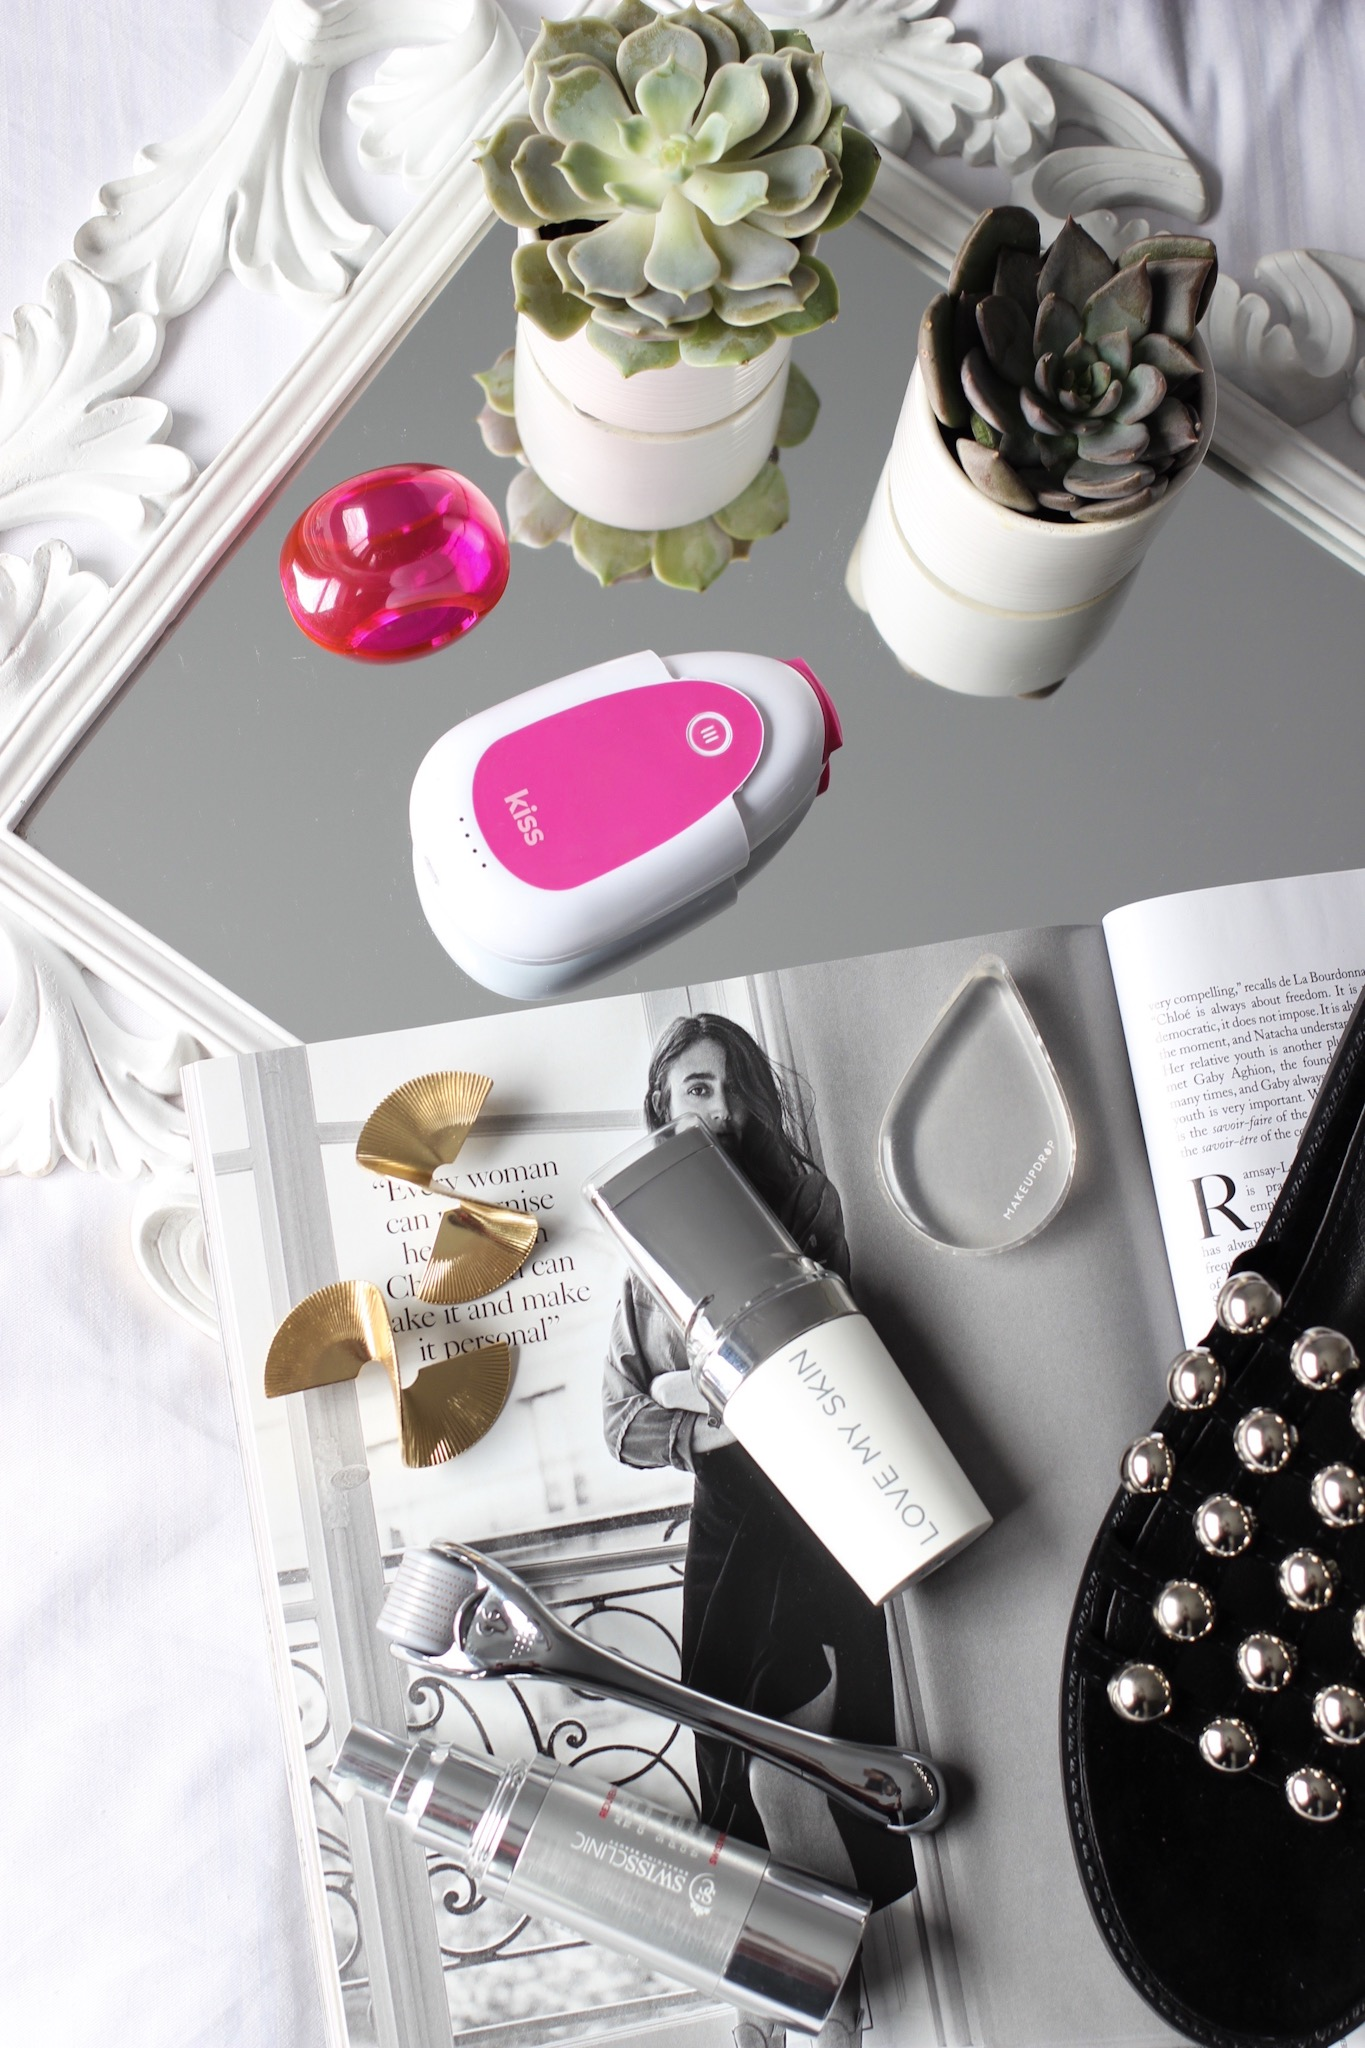 Beauty tools you need to know about